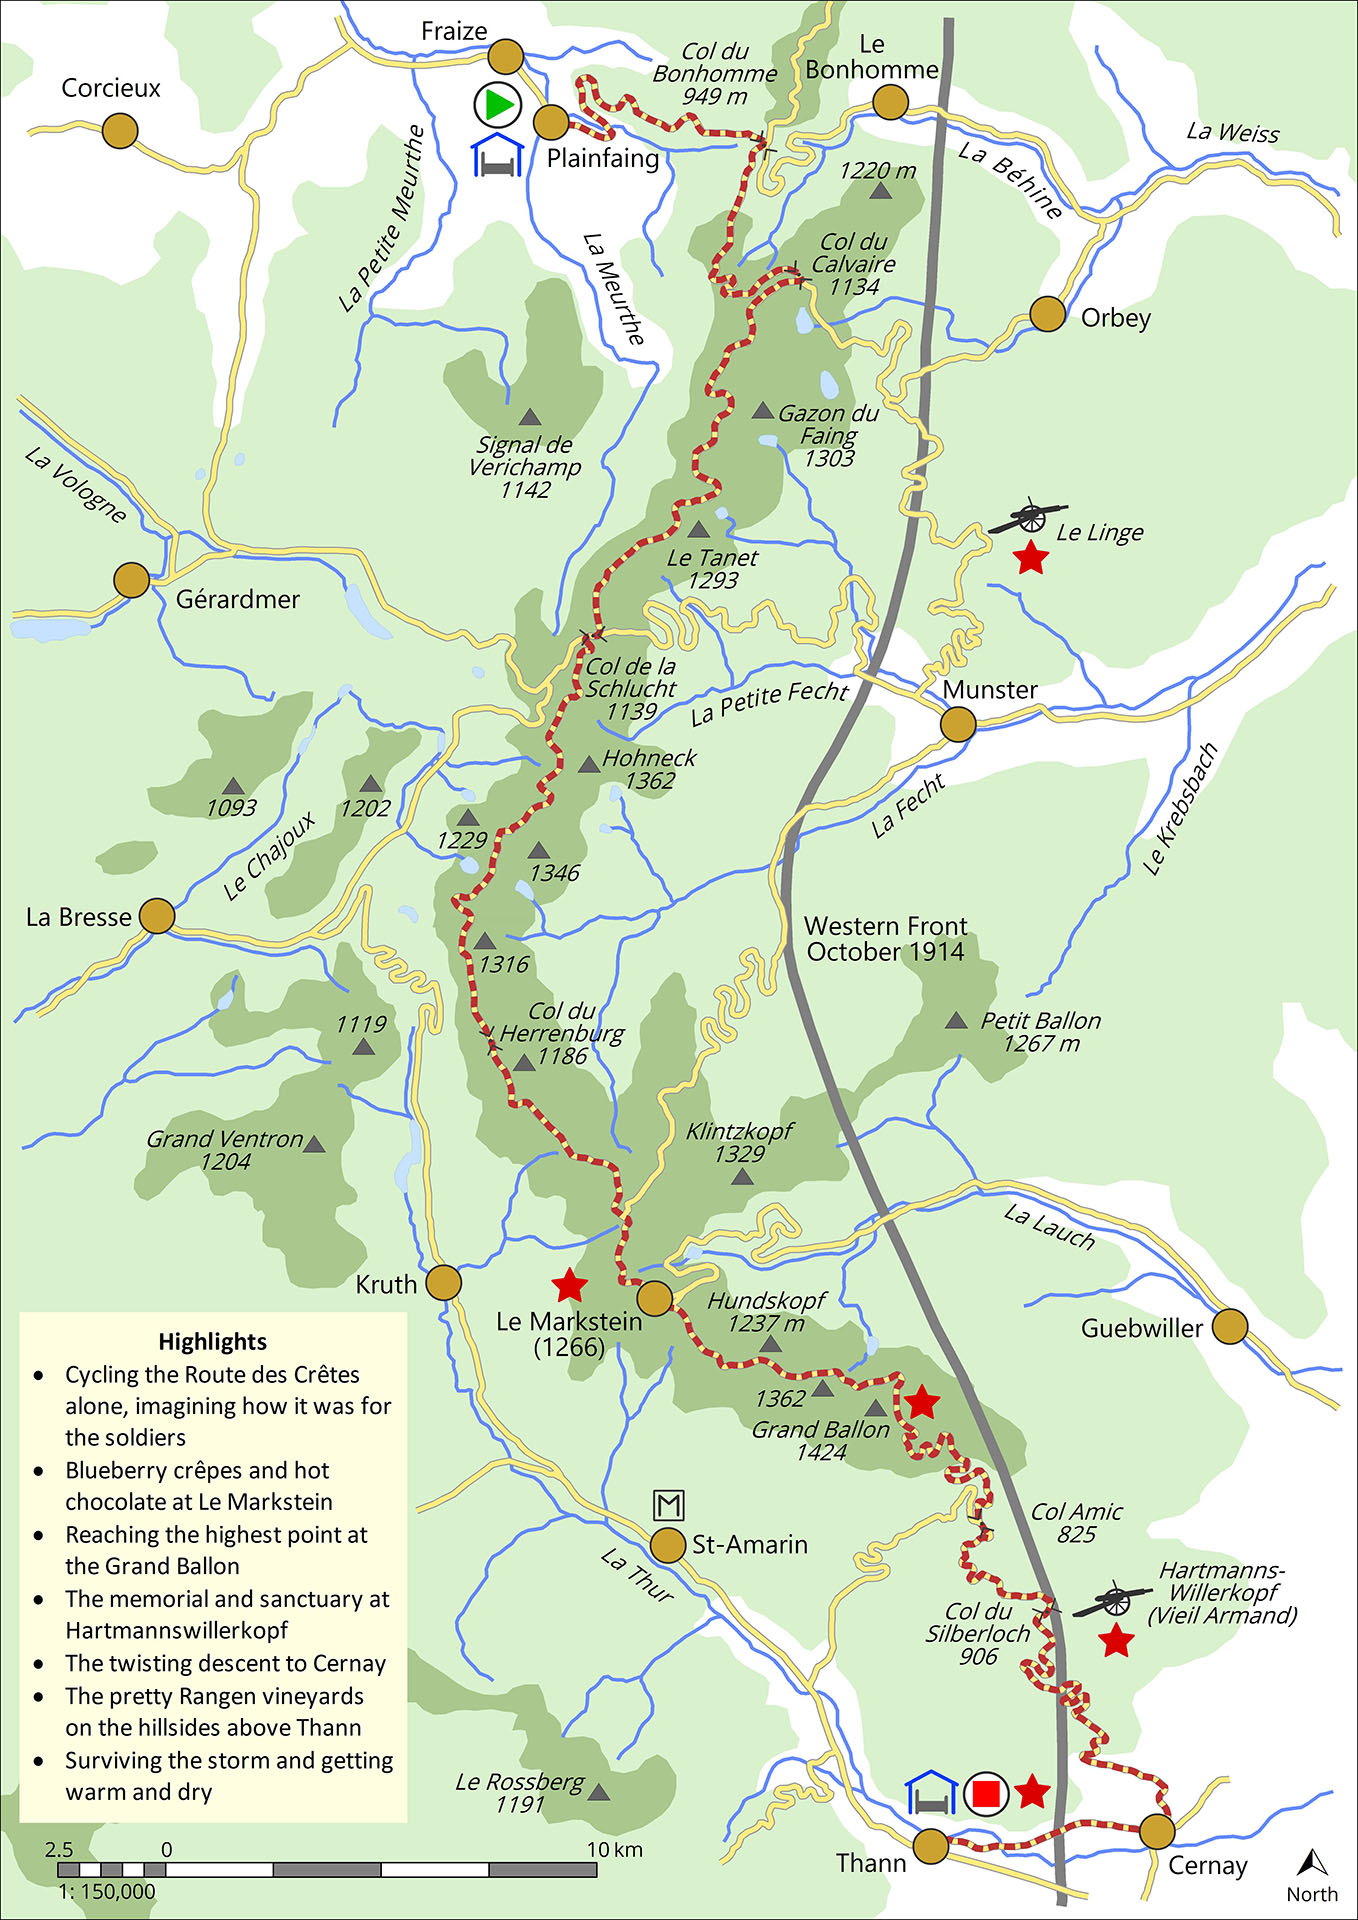 Map of ride from Plainfaing to Thann along the 'Route des Crêtes', a French military road built early in the Great War to supply the front line which ran close to the border with the German Empire